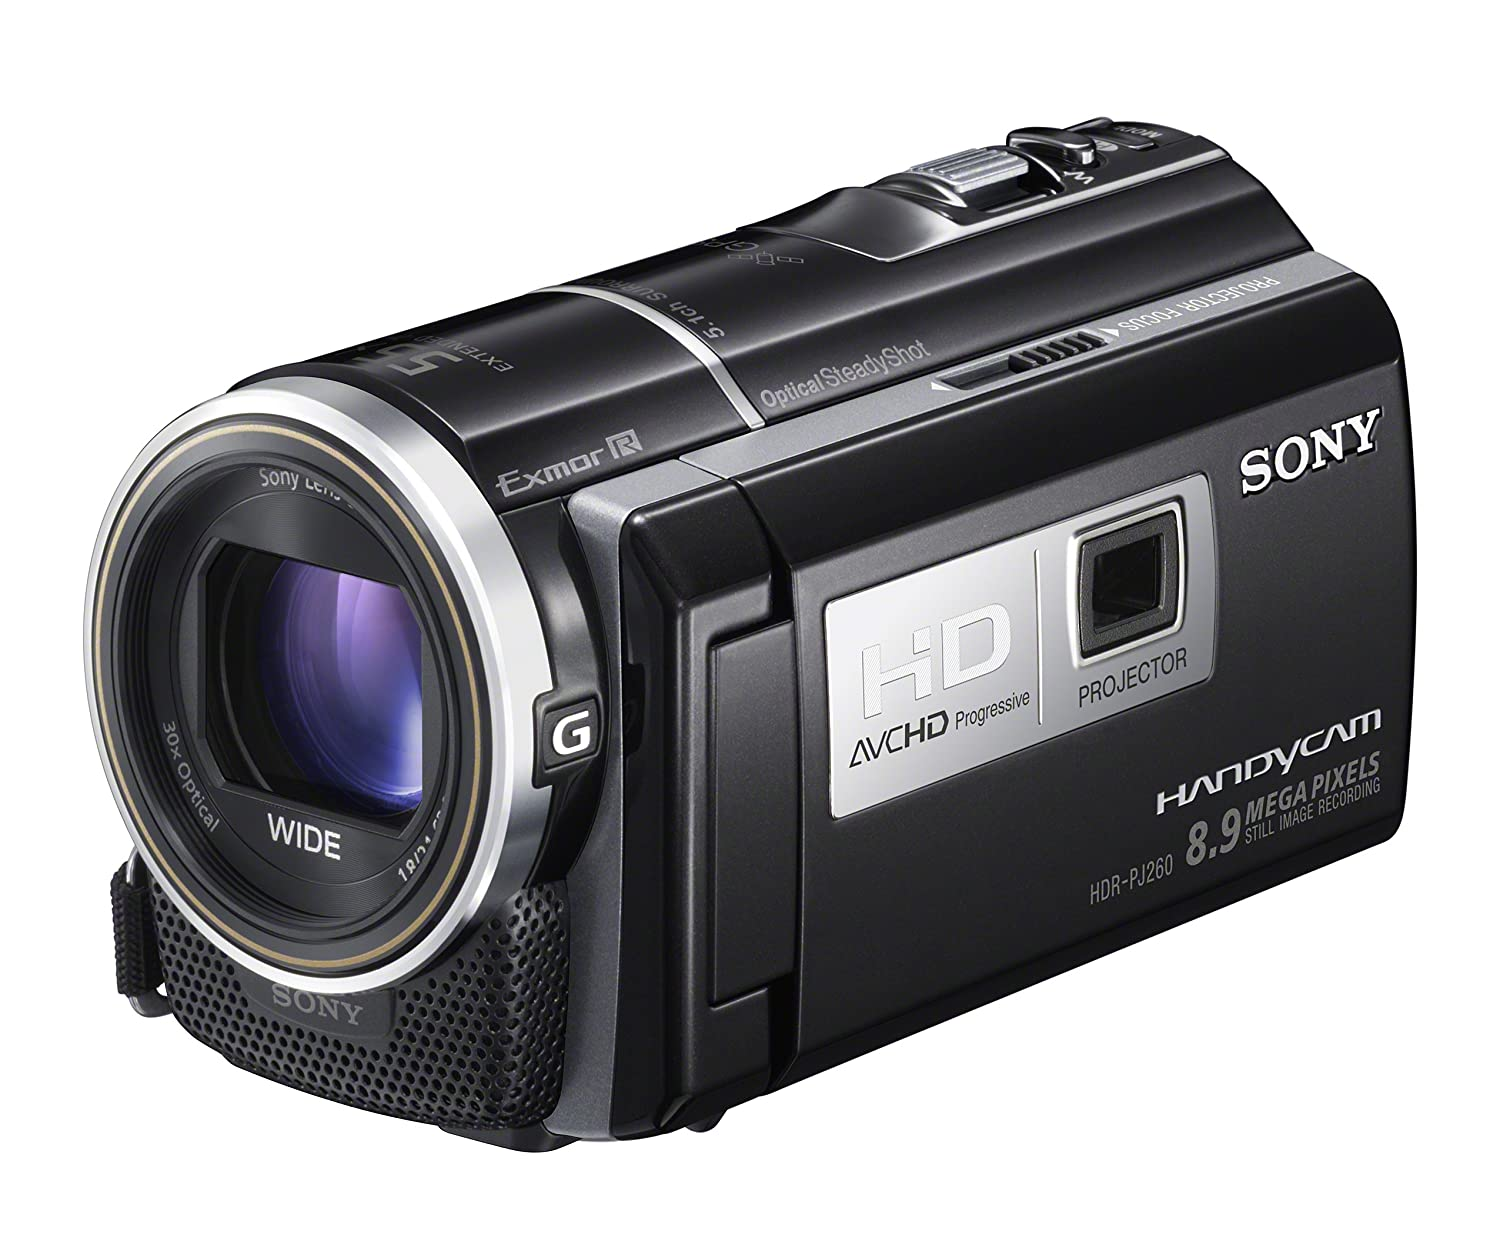 Sony HDRPJ260V High Definition Handycam 8.9 MP Camcorder with 30x Optical Zoom, 16 GB Memory and Built-in Projector ($399.00)